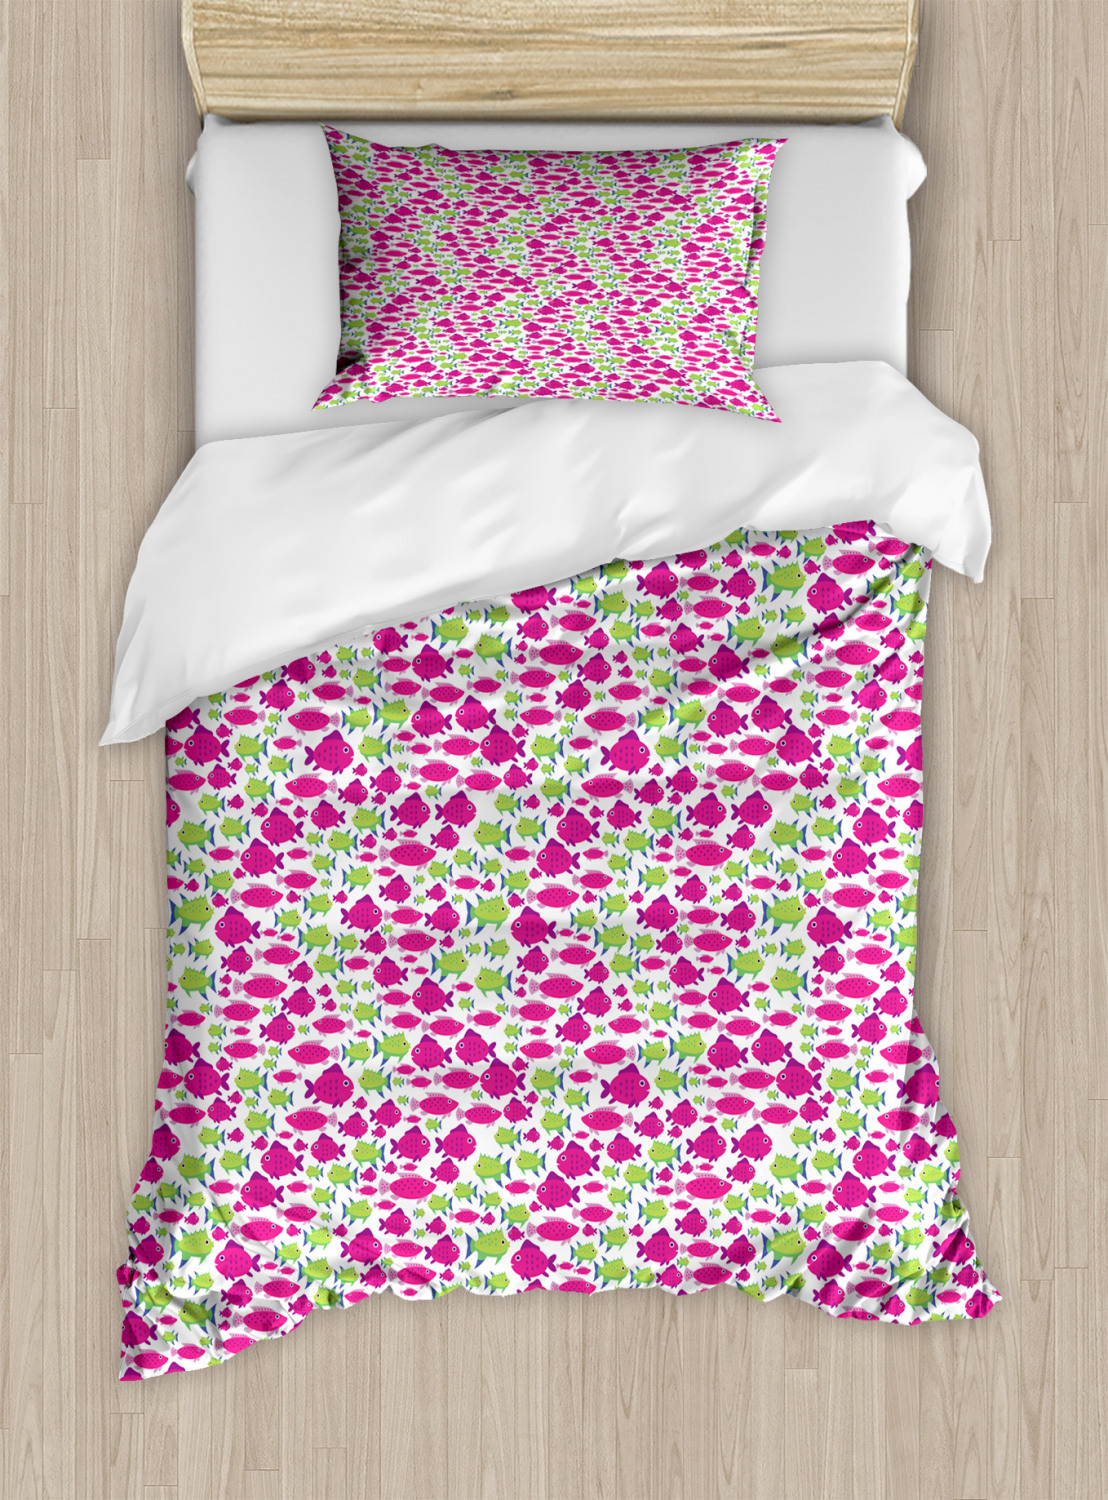 Fish Pattern Duvet Cover Set Twin Queen King Sizes with Pillow Shams Ambesonne